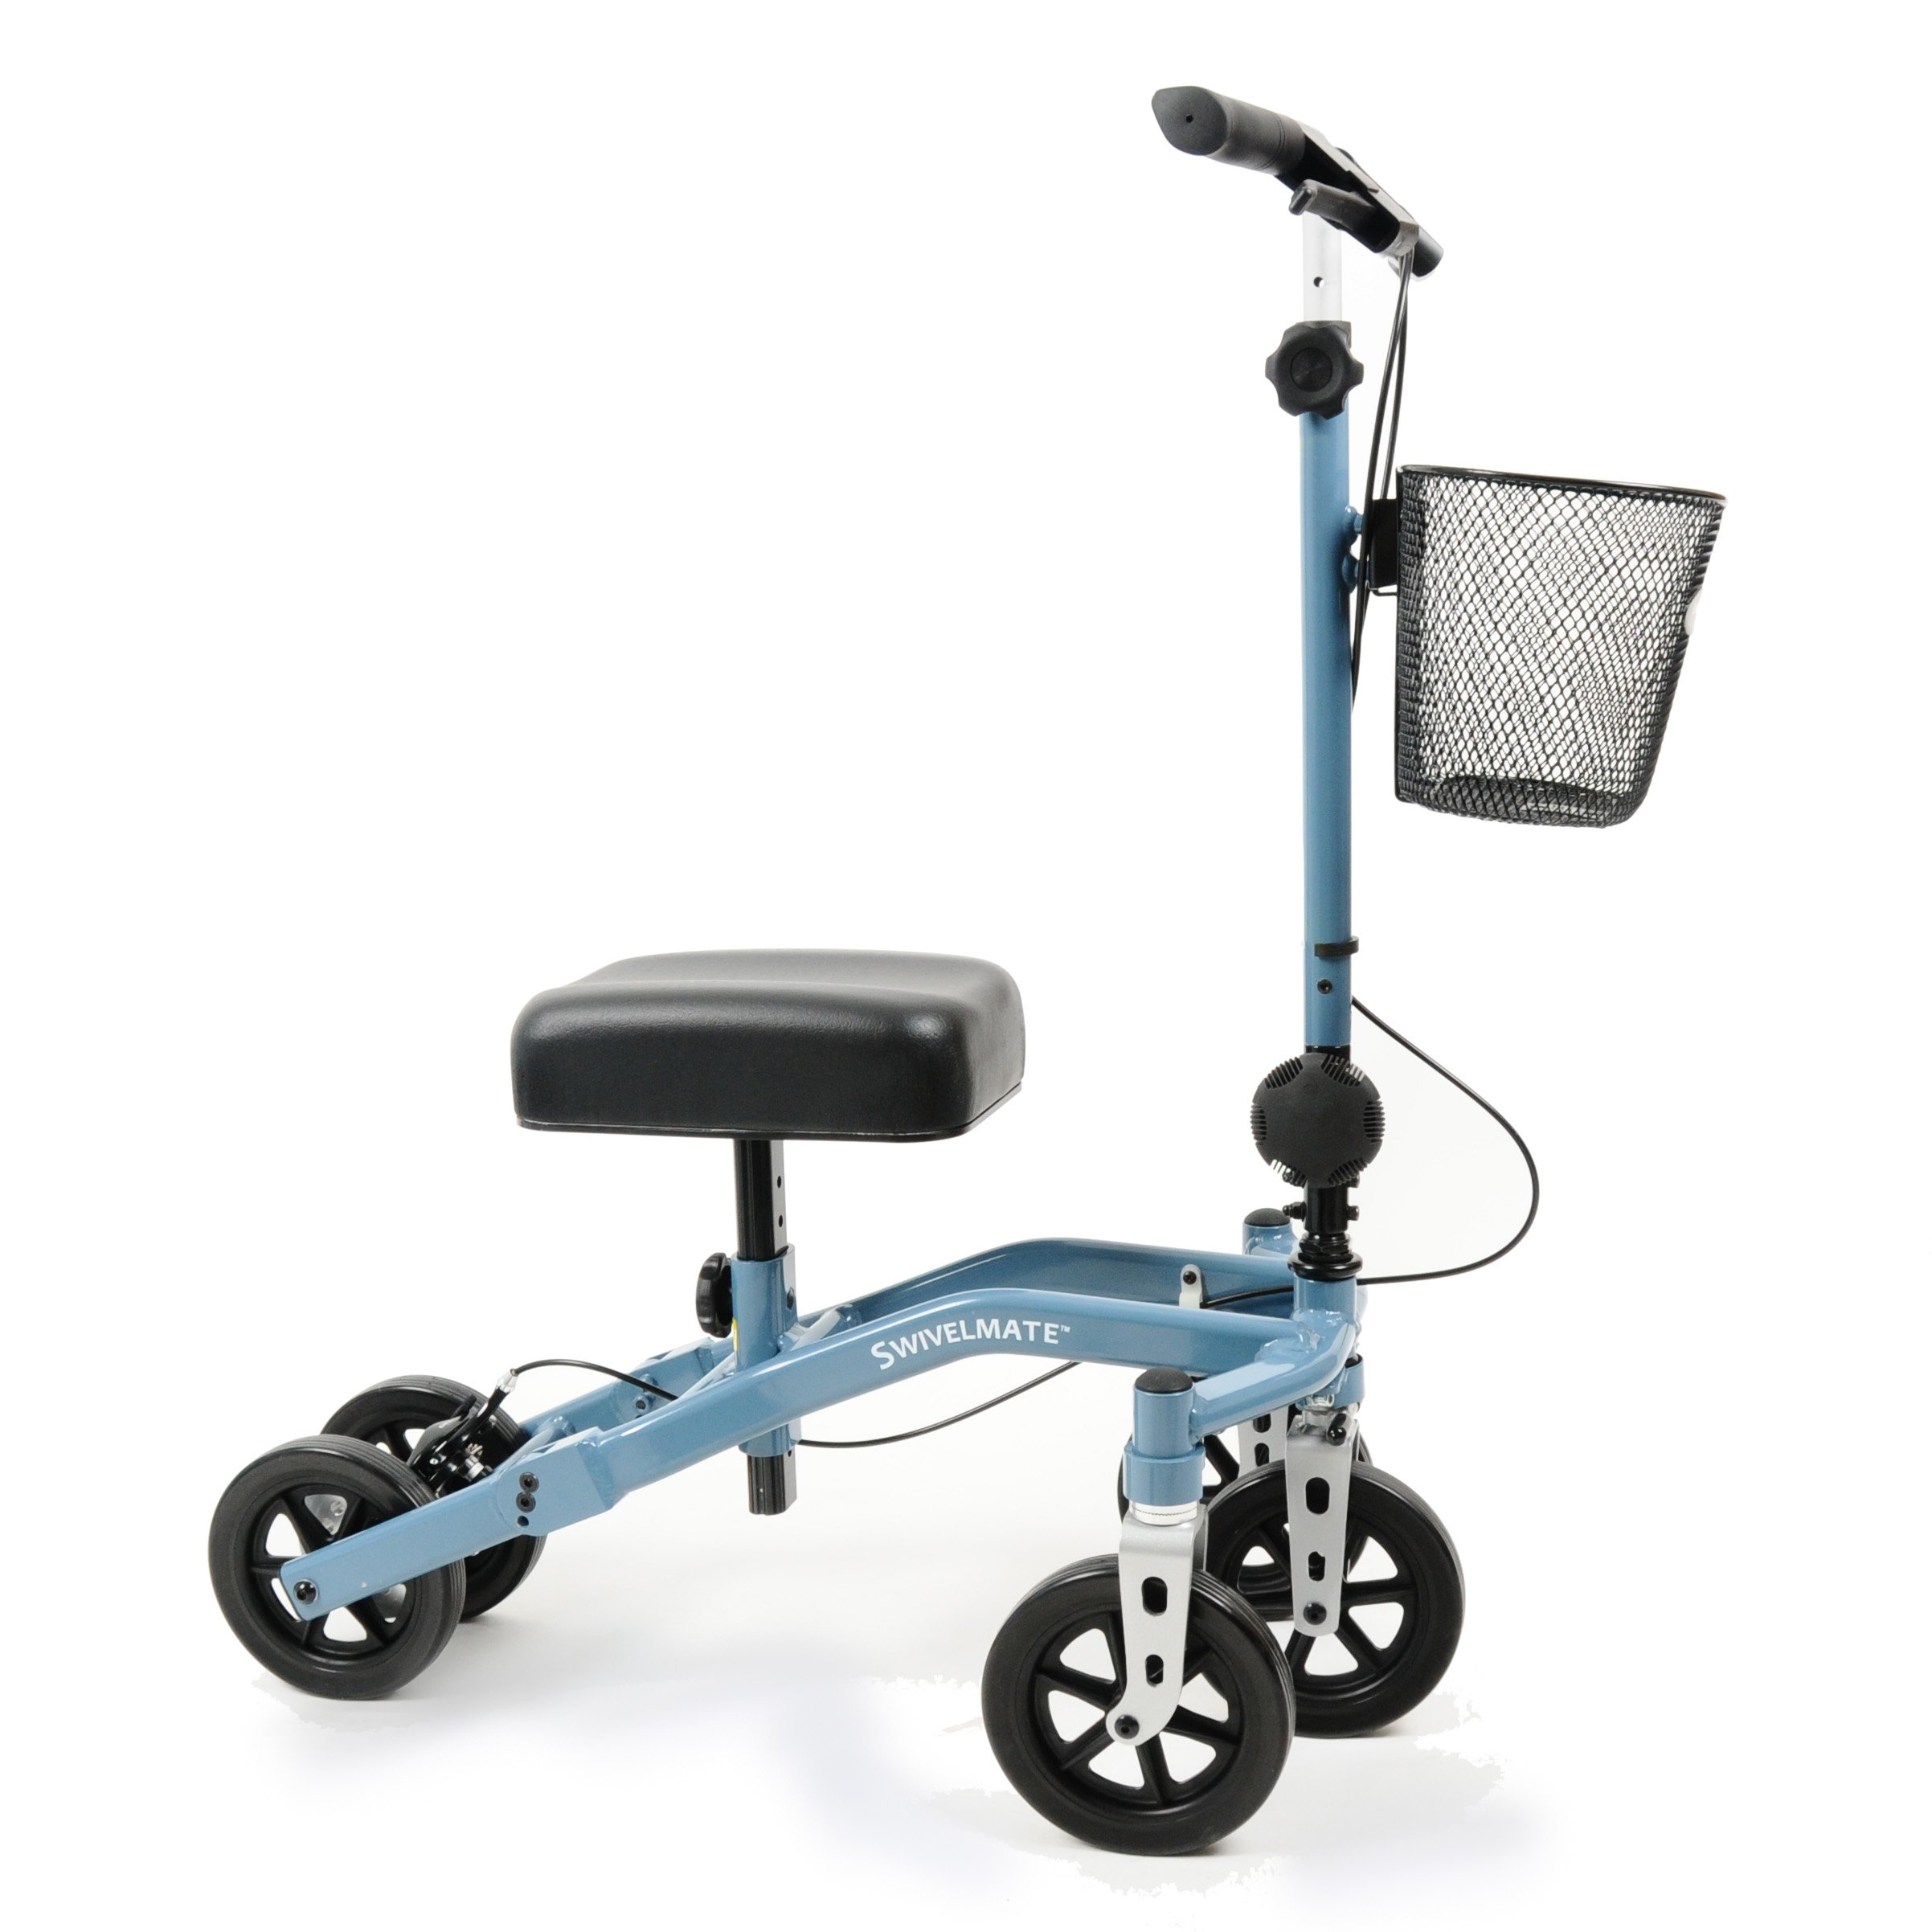 Swivelmate Knee Walker with Basket, Steerable 90 Degree Turning Radius, Premium Quality, Extra Thick Knee Pad, 5-Wheel Stable Design Knee Scooter Crutch Alternative, Foldable